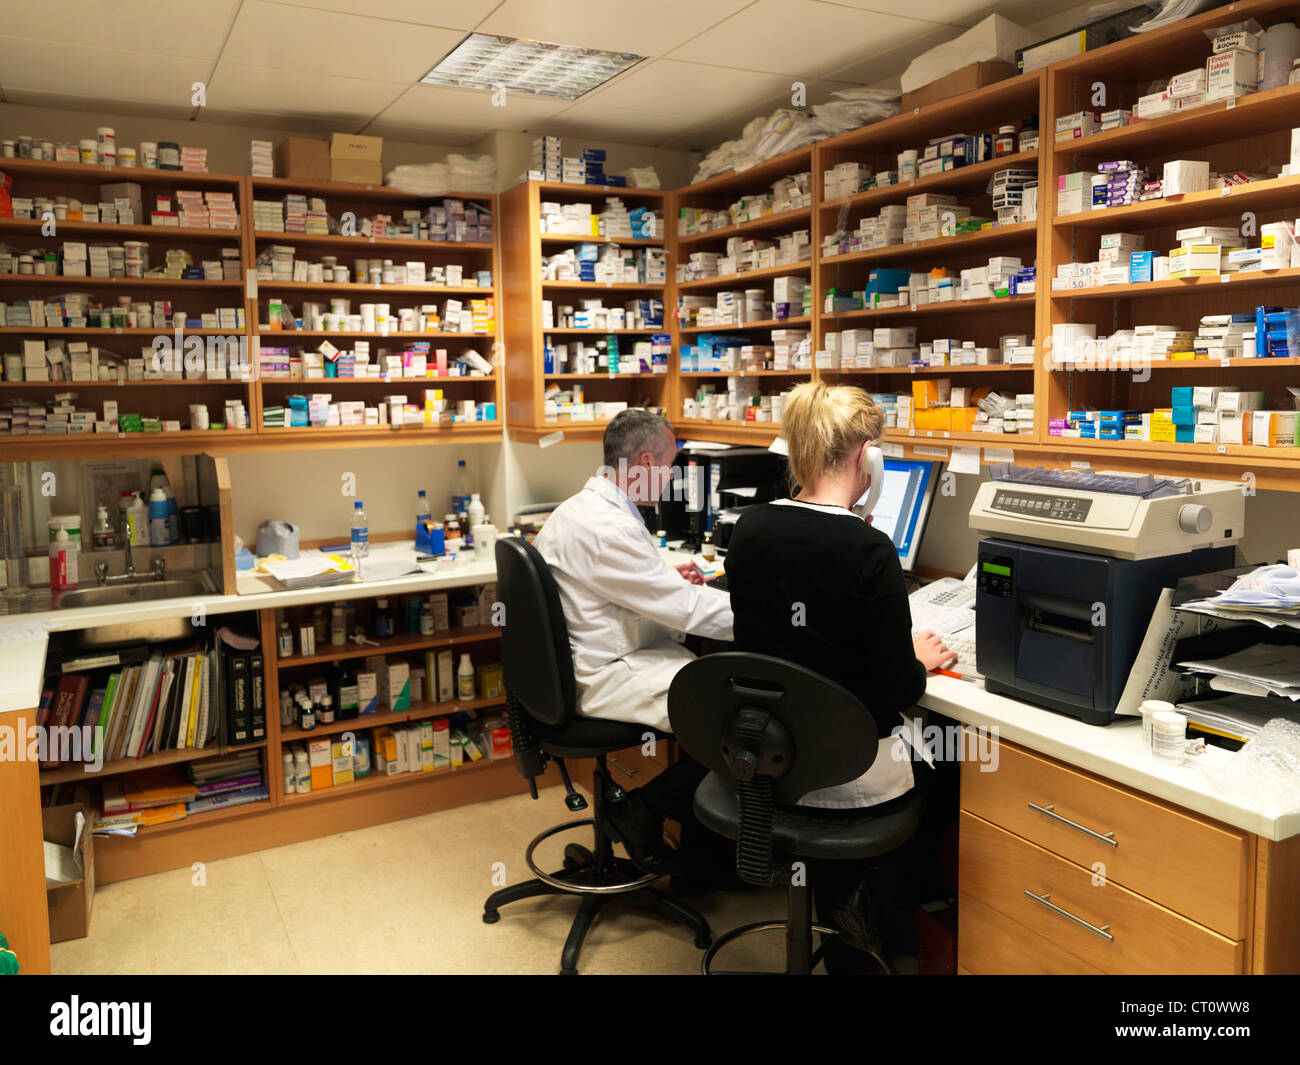 Pharmacists working in office - Stock Image